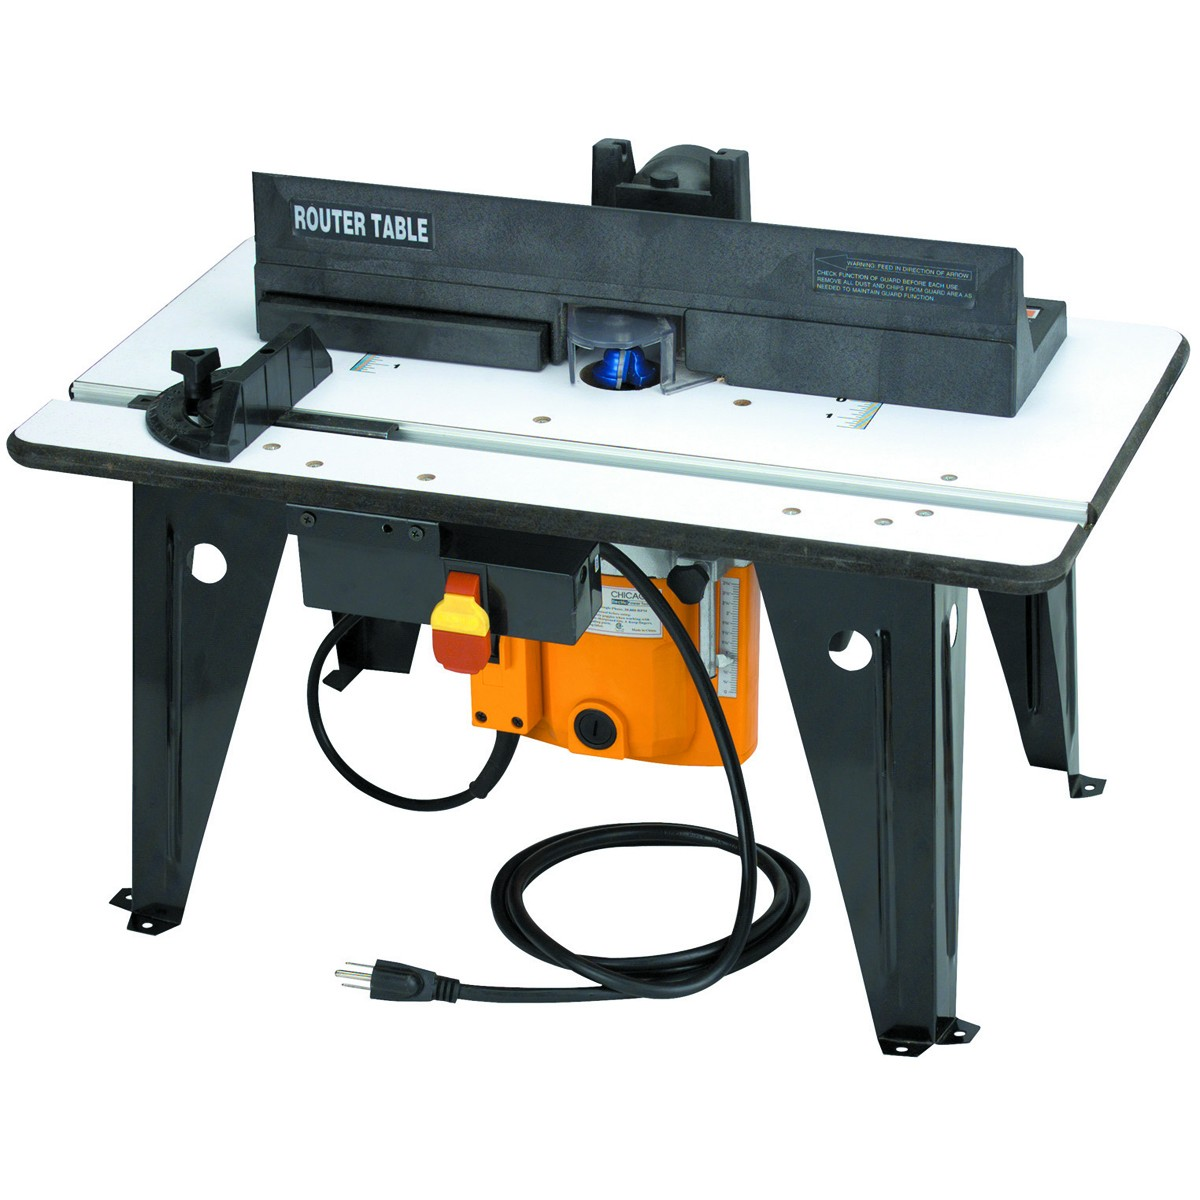 Chicago electric power tools benchtop router table with 1 34 hp chicago electric power tools benchtop router table with 1 34 hp router 20000 rpm 120 v walmart greentooth Gallery